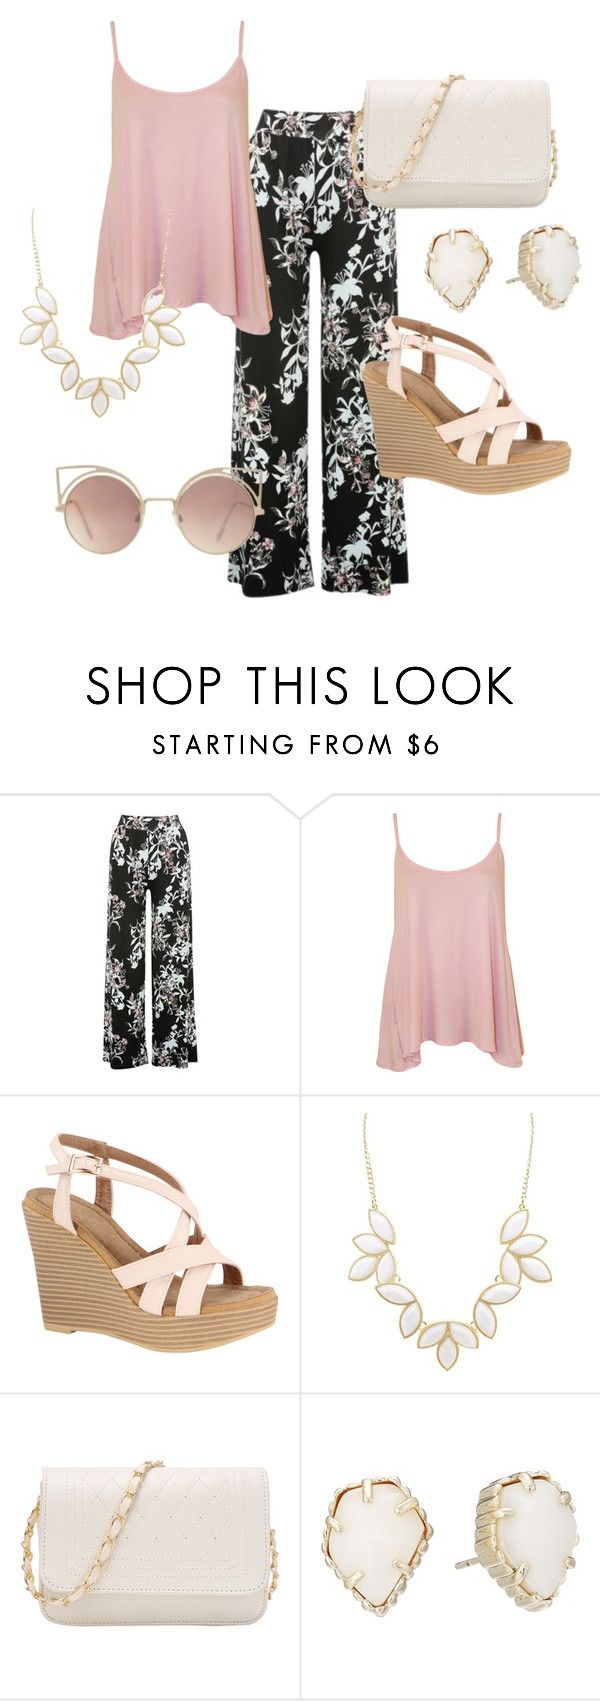 """""""Boho Floral"""" by ncis1218 ❤ liked on Polyvore featuring M&Co, WearAll, Charlotte Russe, Kendra Scott and MANGO"""